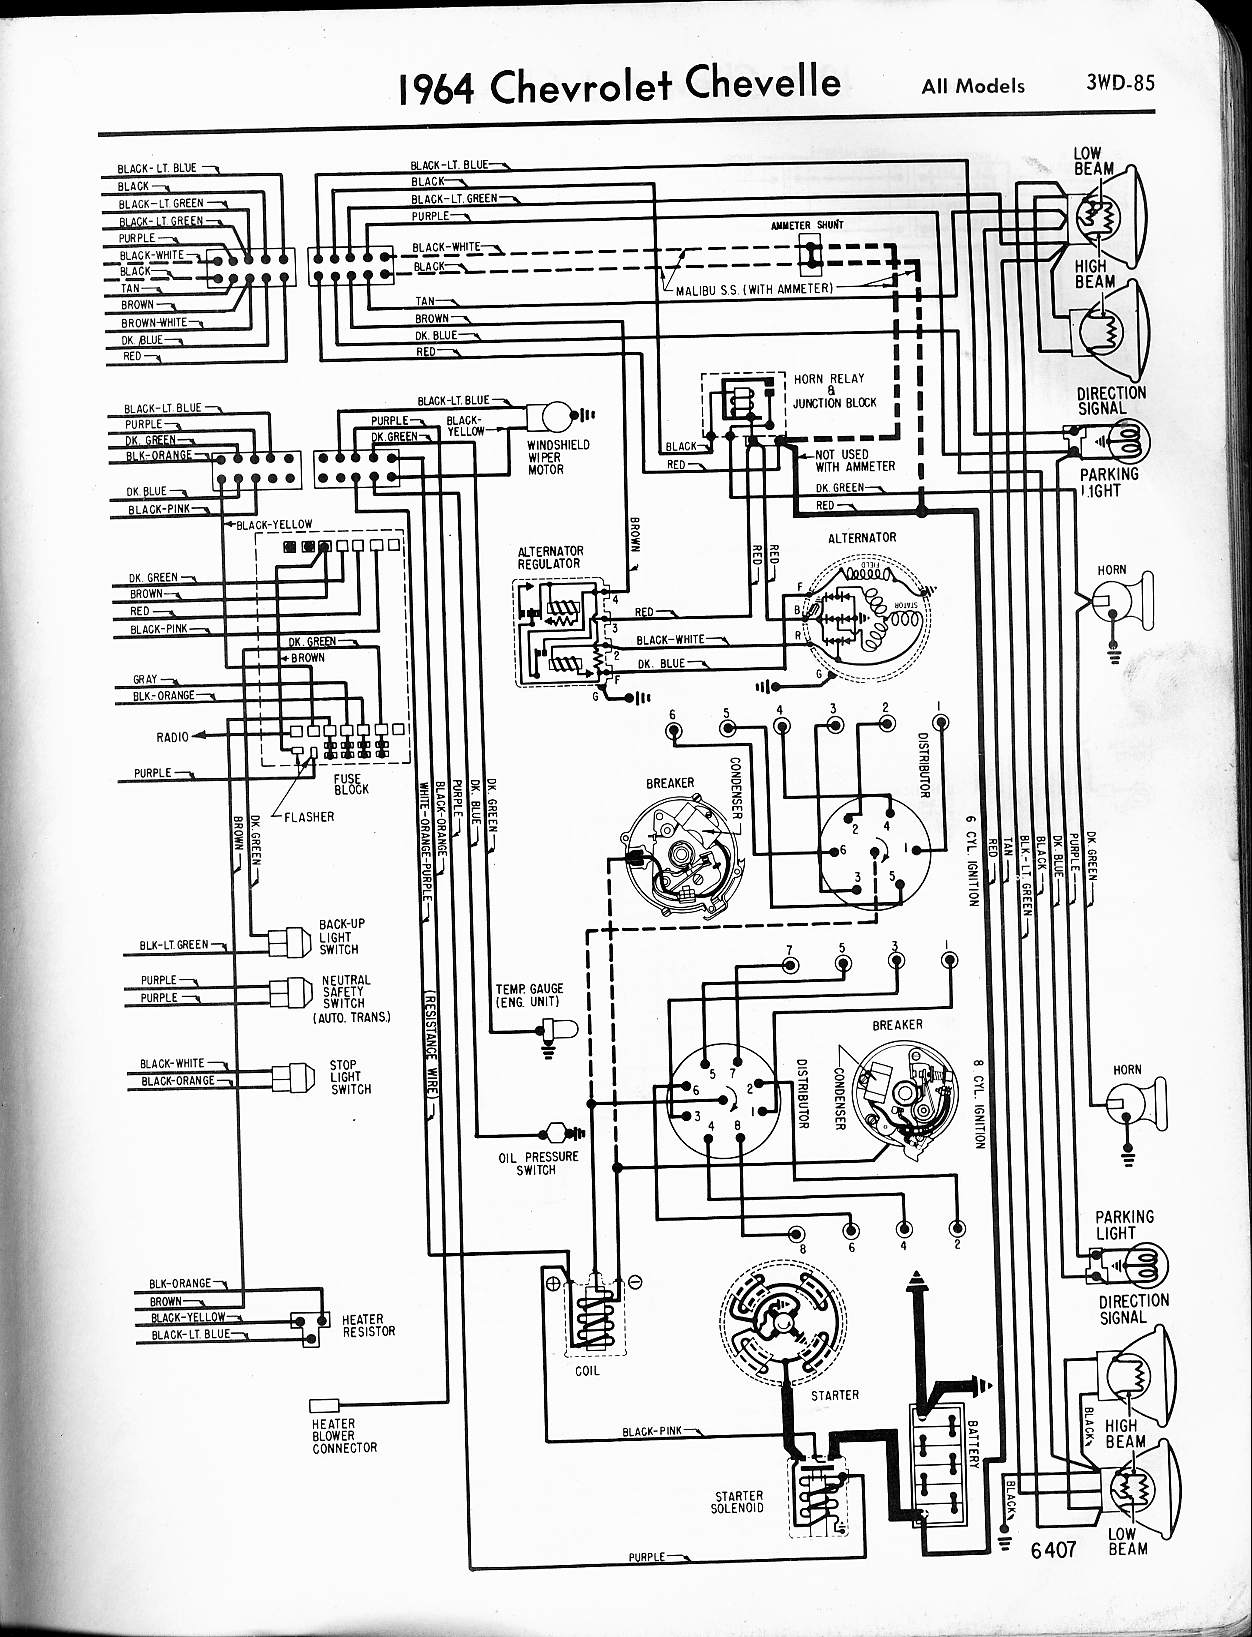 Tail Light Wiring Diagram 1964 Third Level 65 Mustang Lights Chevrolet Diagrams Harness 57 Chevy